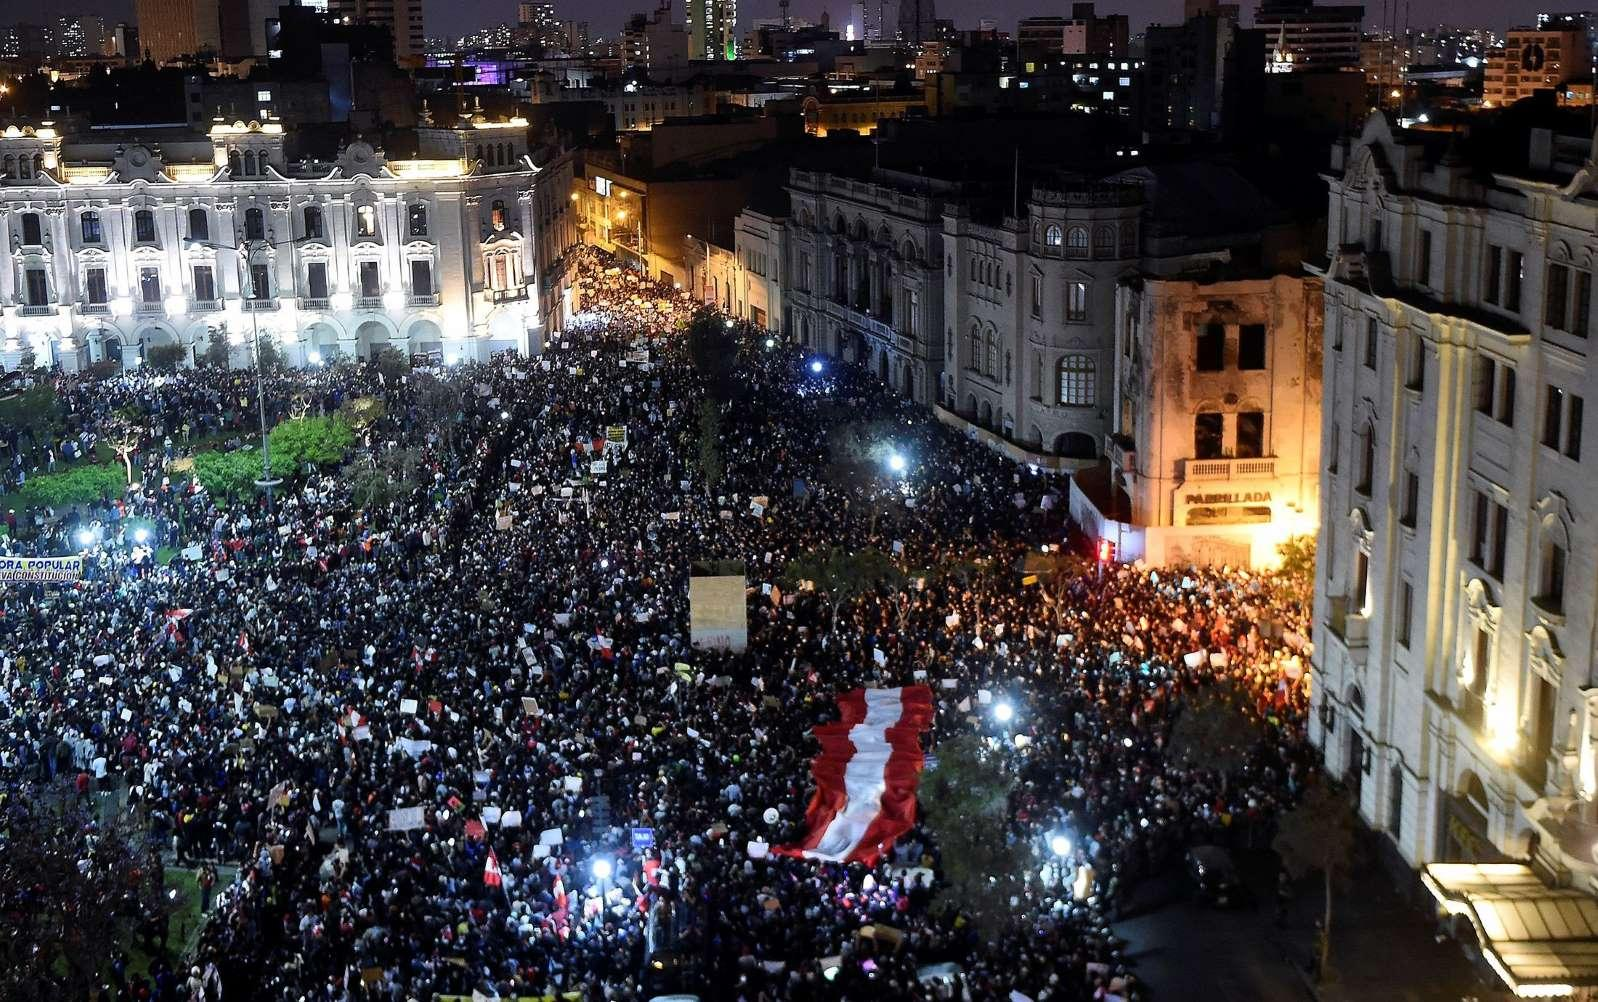 Photodollar • Peruvians Take to the Streets to Protest Ouster of President  | [Nov 14, 2020] - Thousands of Peruvians took part in nationwide marches  Thursday night ...